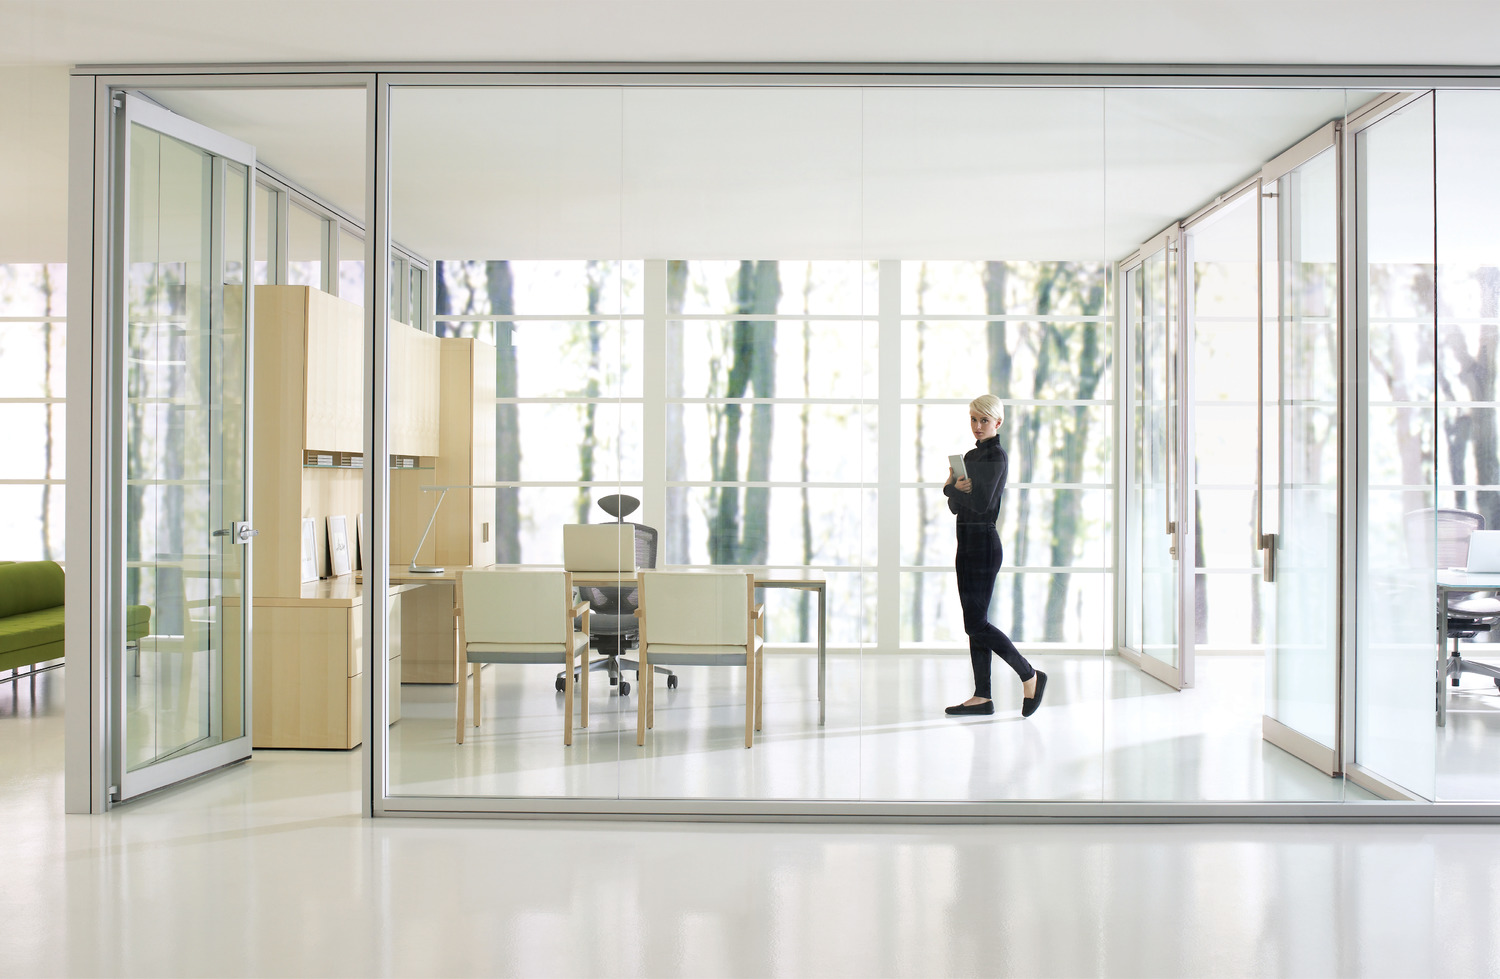 Architectural/Glass Walls